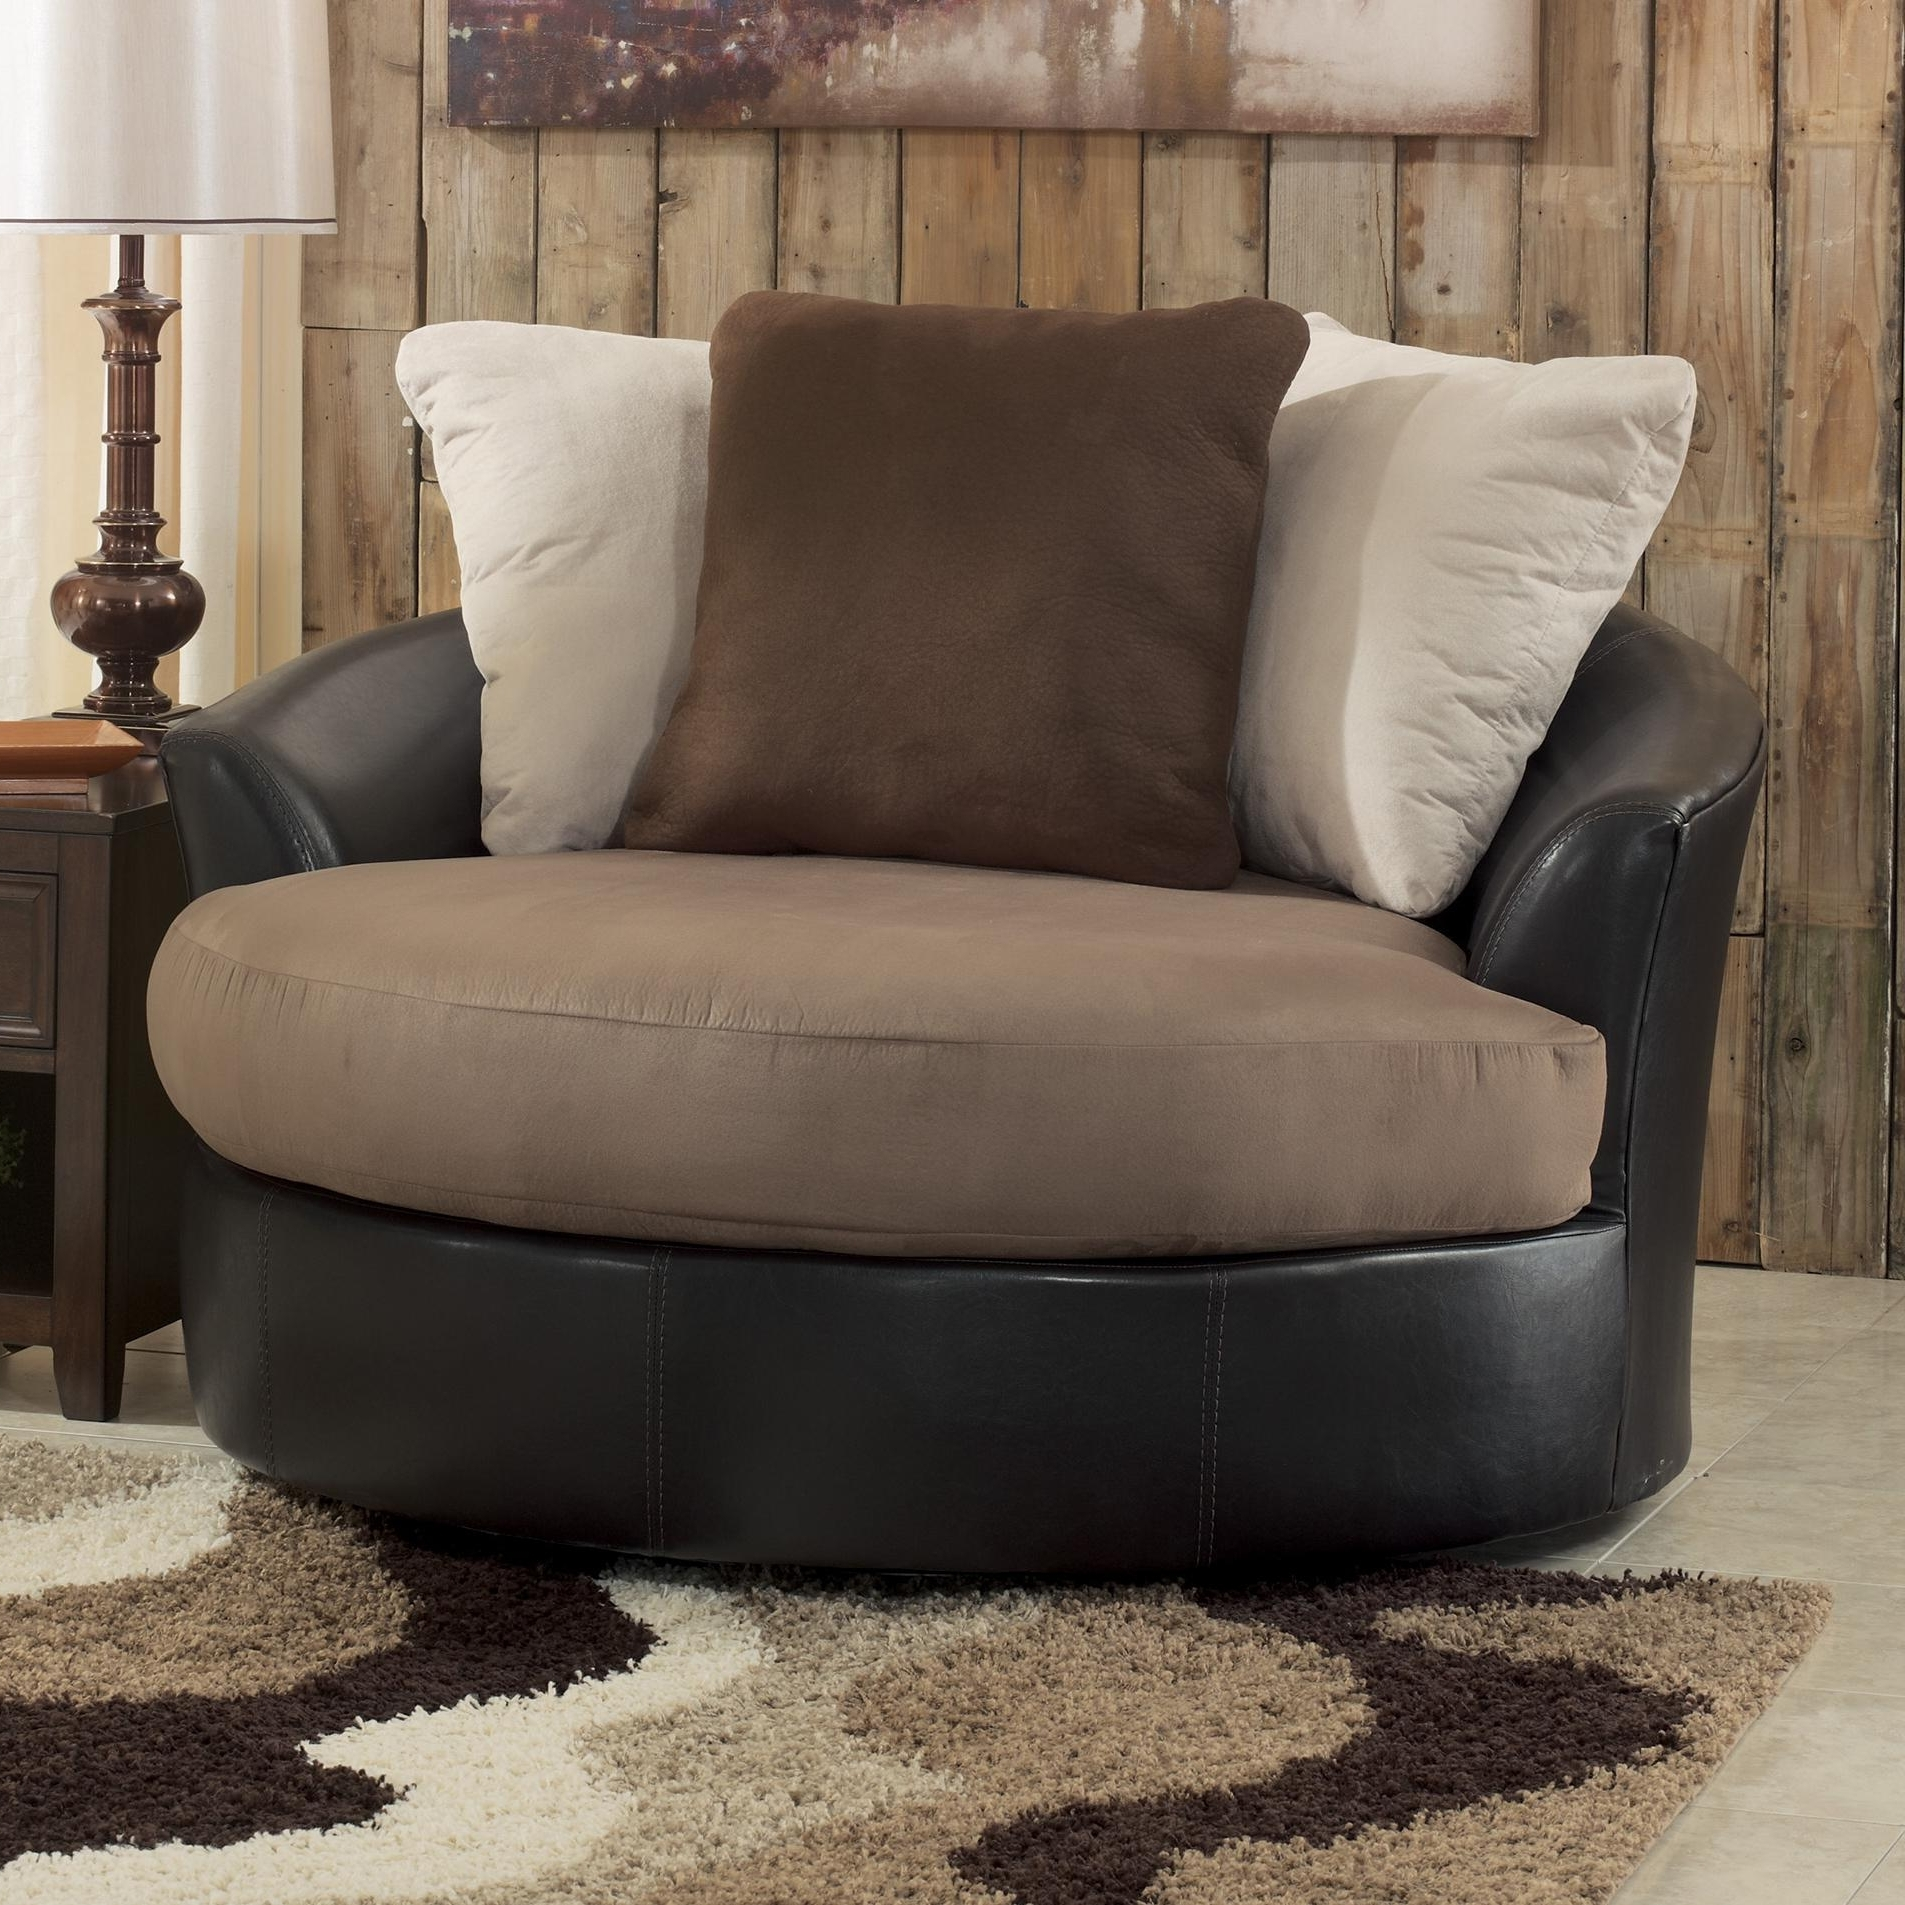 Newest Oversized Sofa Chairs Inside Sofa : Excellent Round Sofa Chair Living Room Furniture Harveys (View 8 of 20)